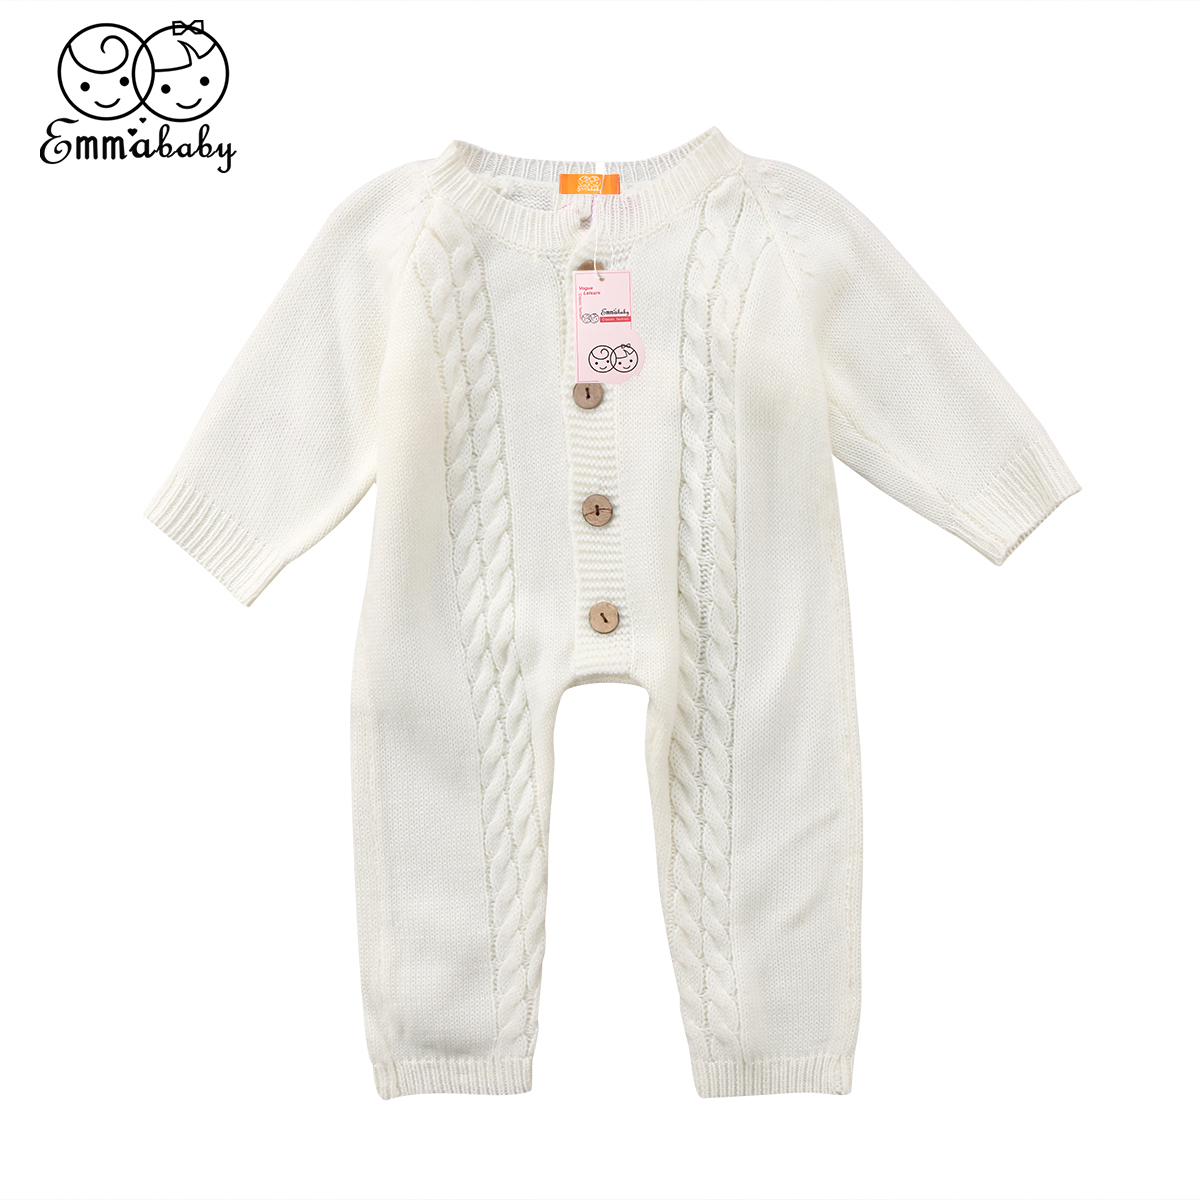 Emmababy Newborn Kid Baby Boy Girl Infant Long Sleeve Wool Knitting Romper Cotton Clothes Outfits